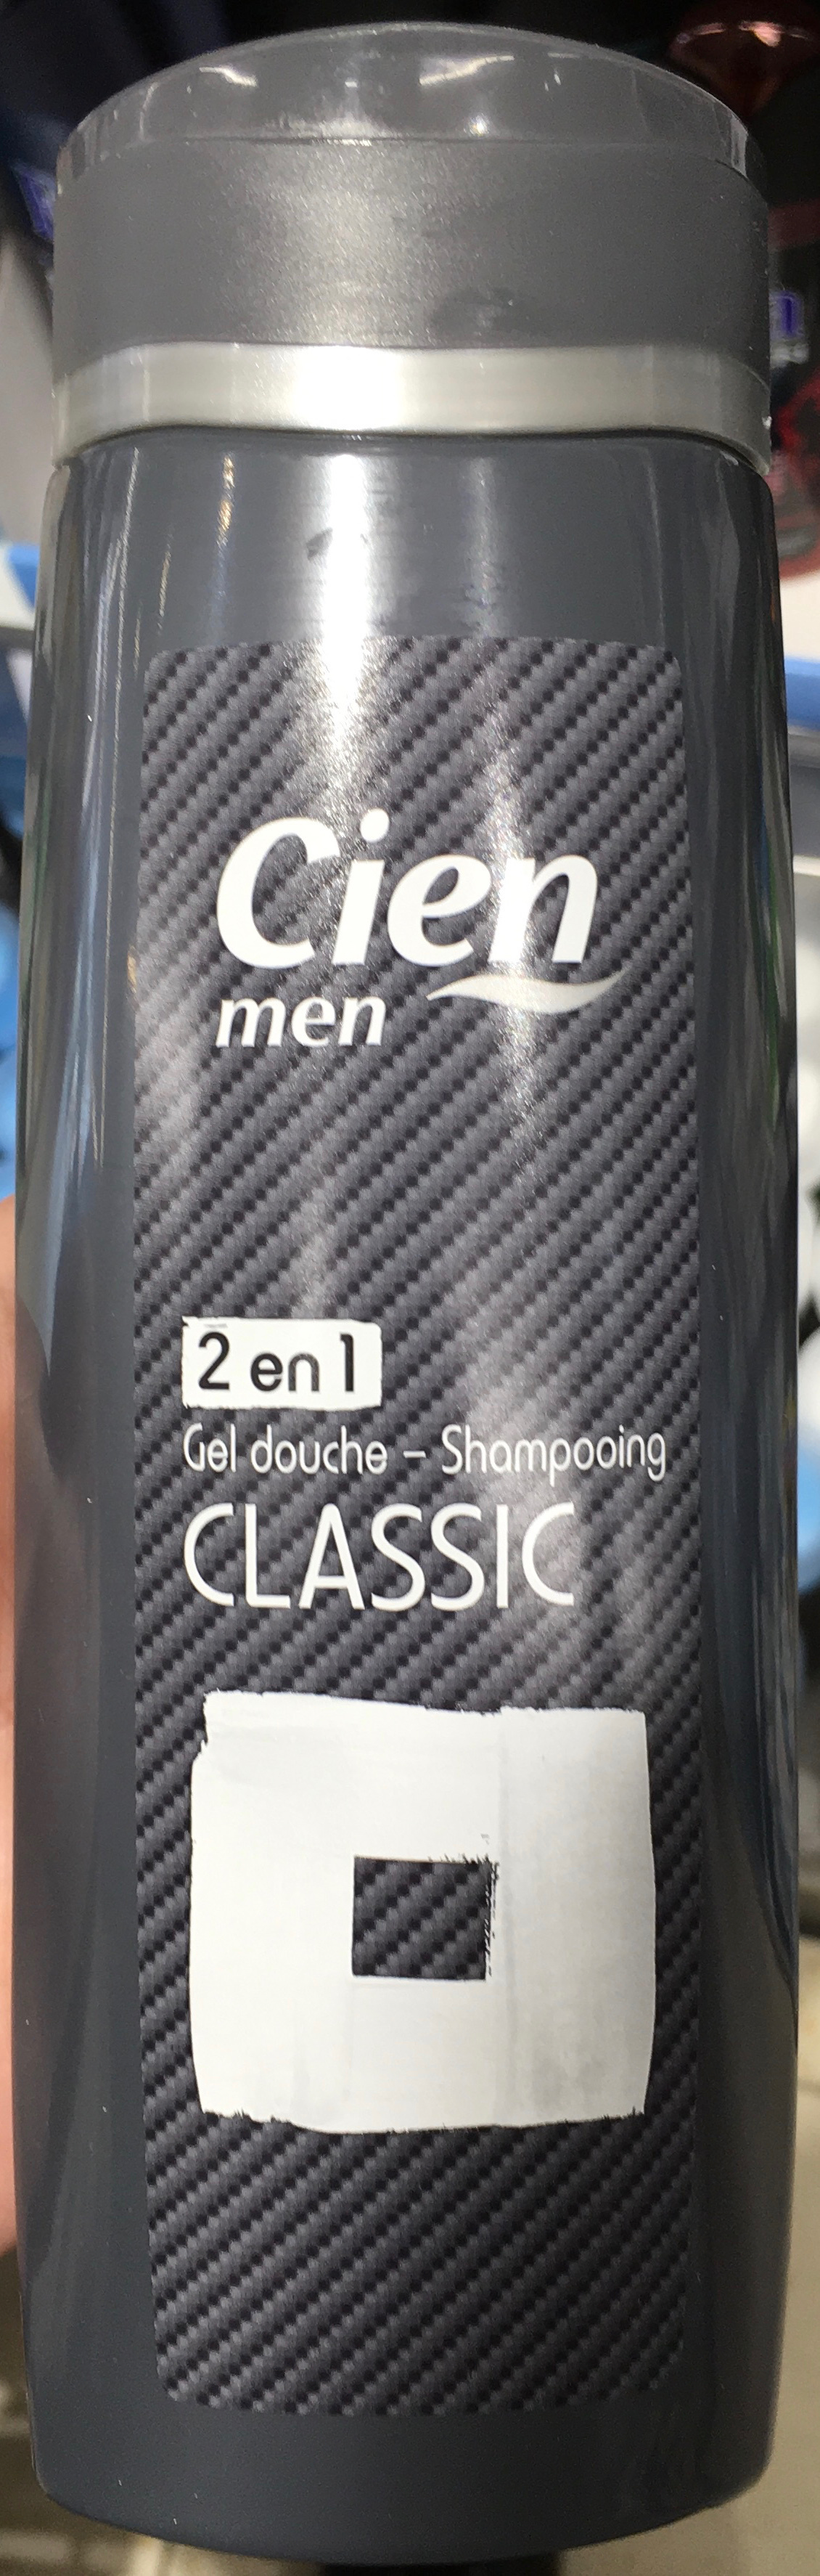 Gel douche Shampooing 2 en 1 Classic - Product